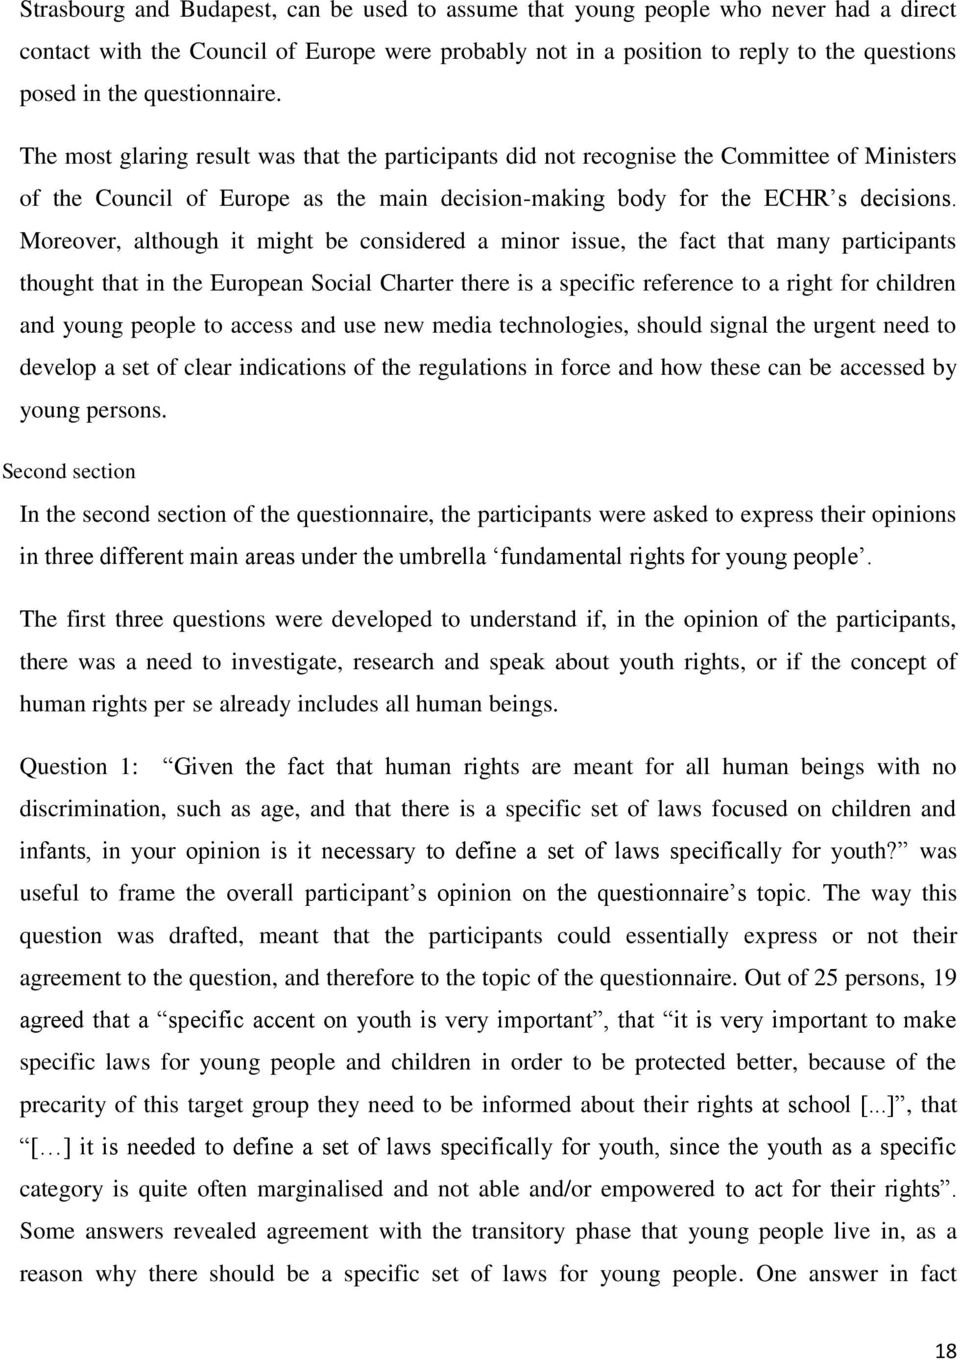 Moreover, although it might be considered a minor issue, the fact that many participants thought that in the European Social Charter there is a specific reference to a right for children and young